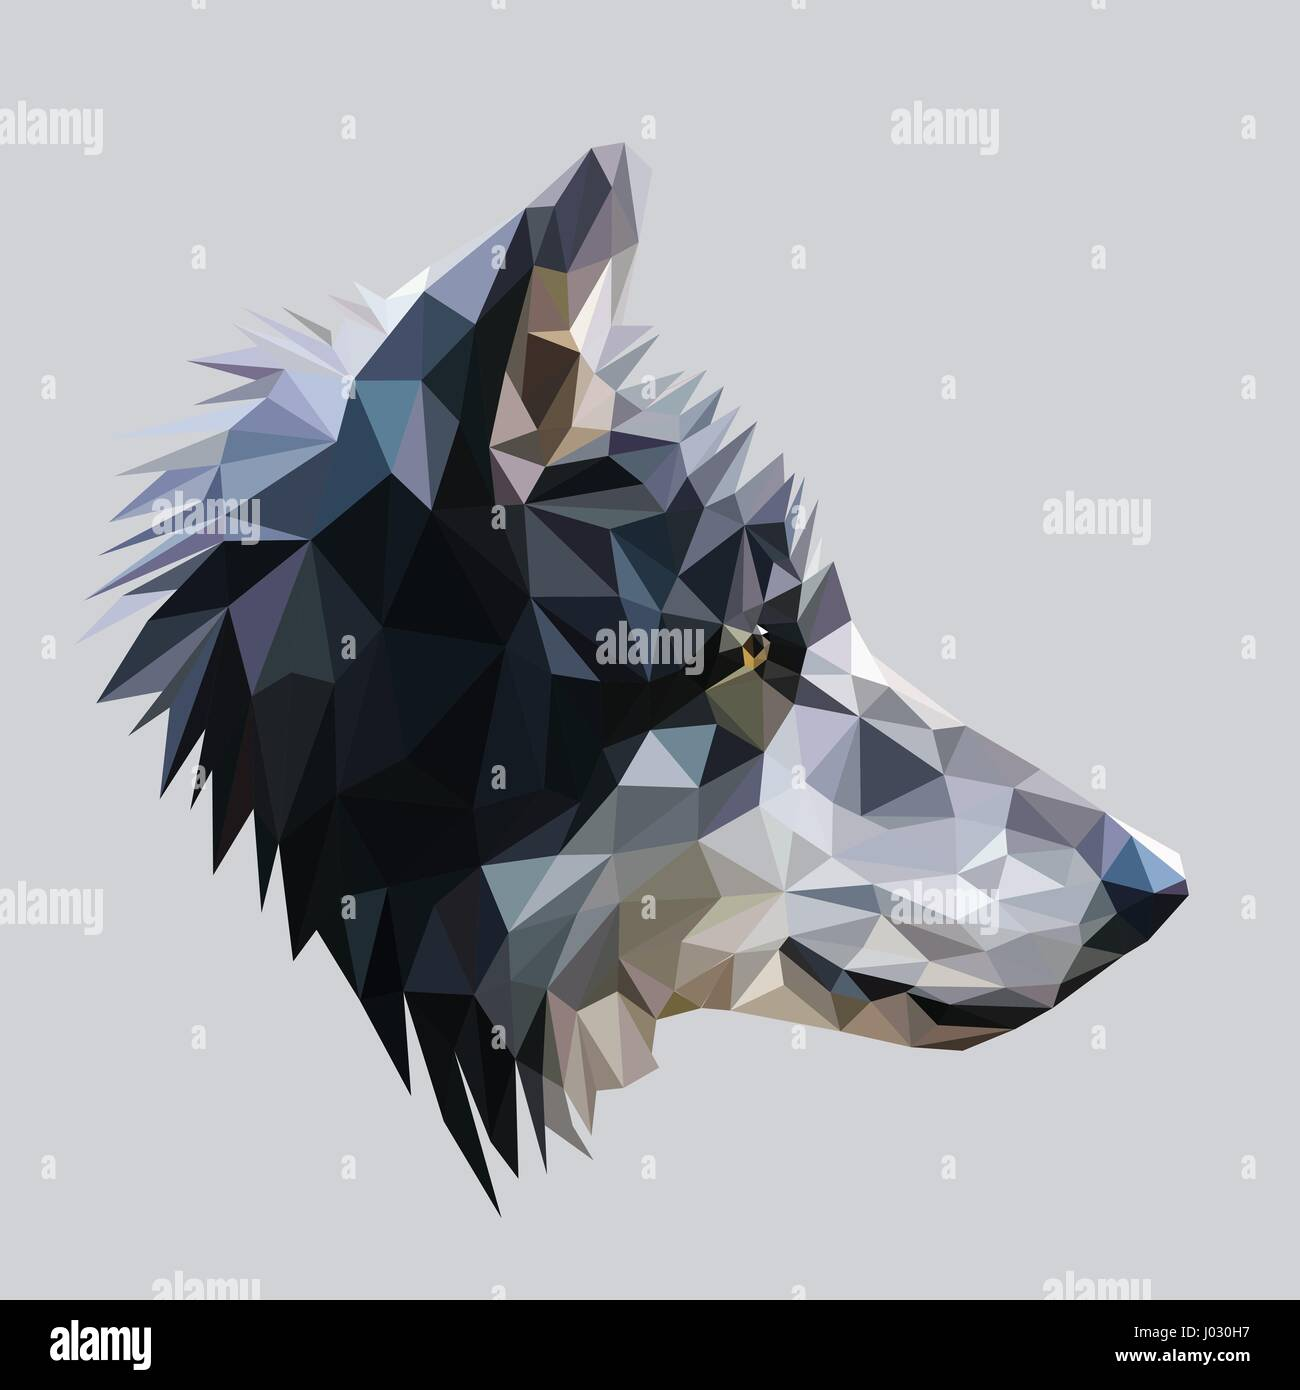 Wolf low poly design. Triangle vector illustration. - Stock Vector